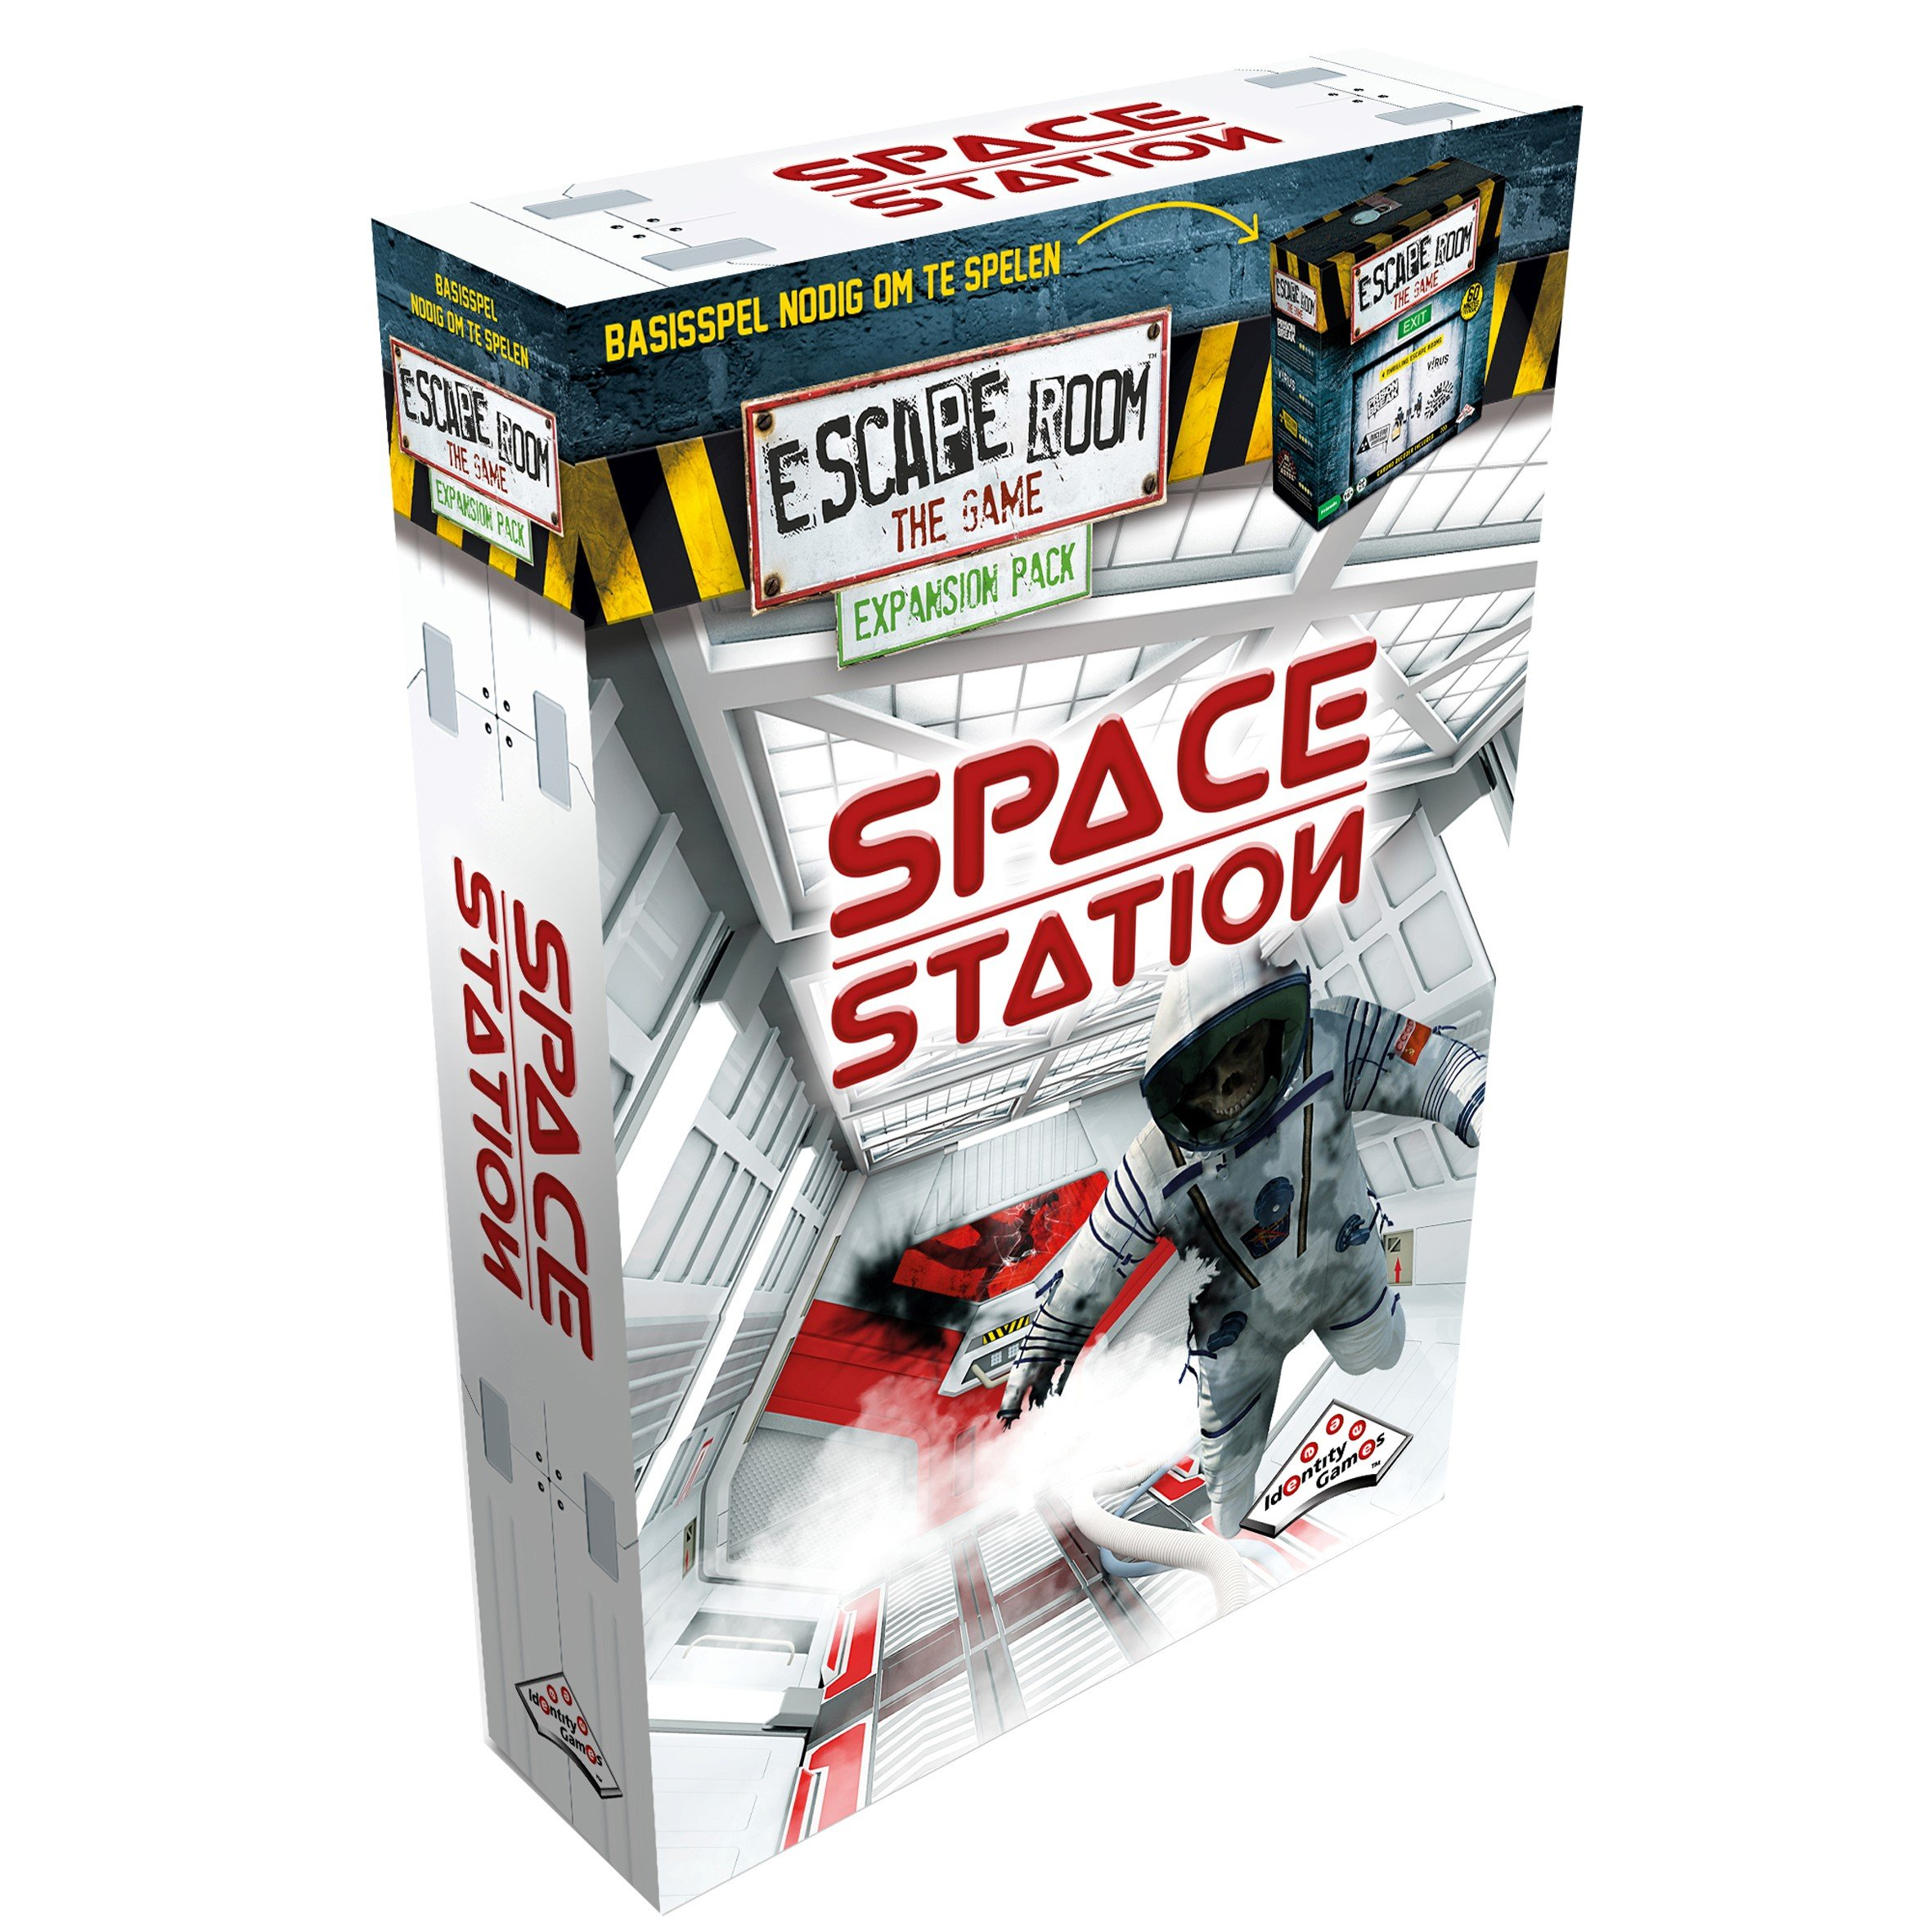 ESCAPE ROOM - THE GAME: SPACE STATION [GAME]: Escape Room: Amazon.es: Juguetes y juegos